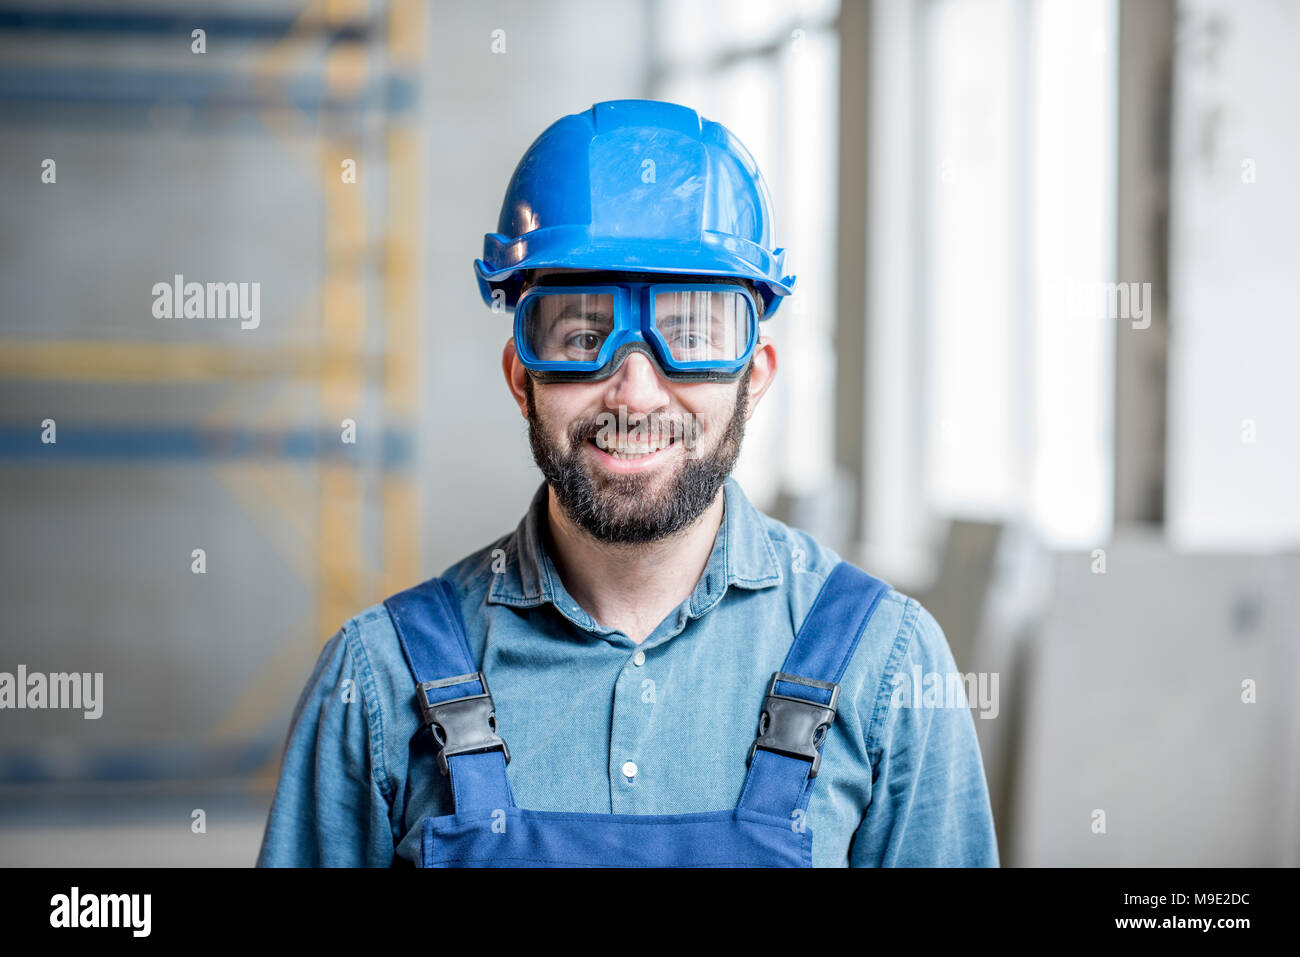 Builder in uniform indoors - Stock Image